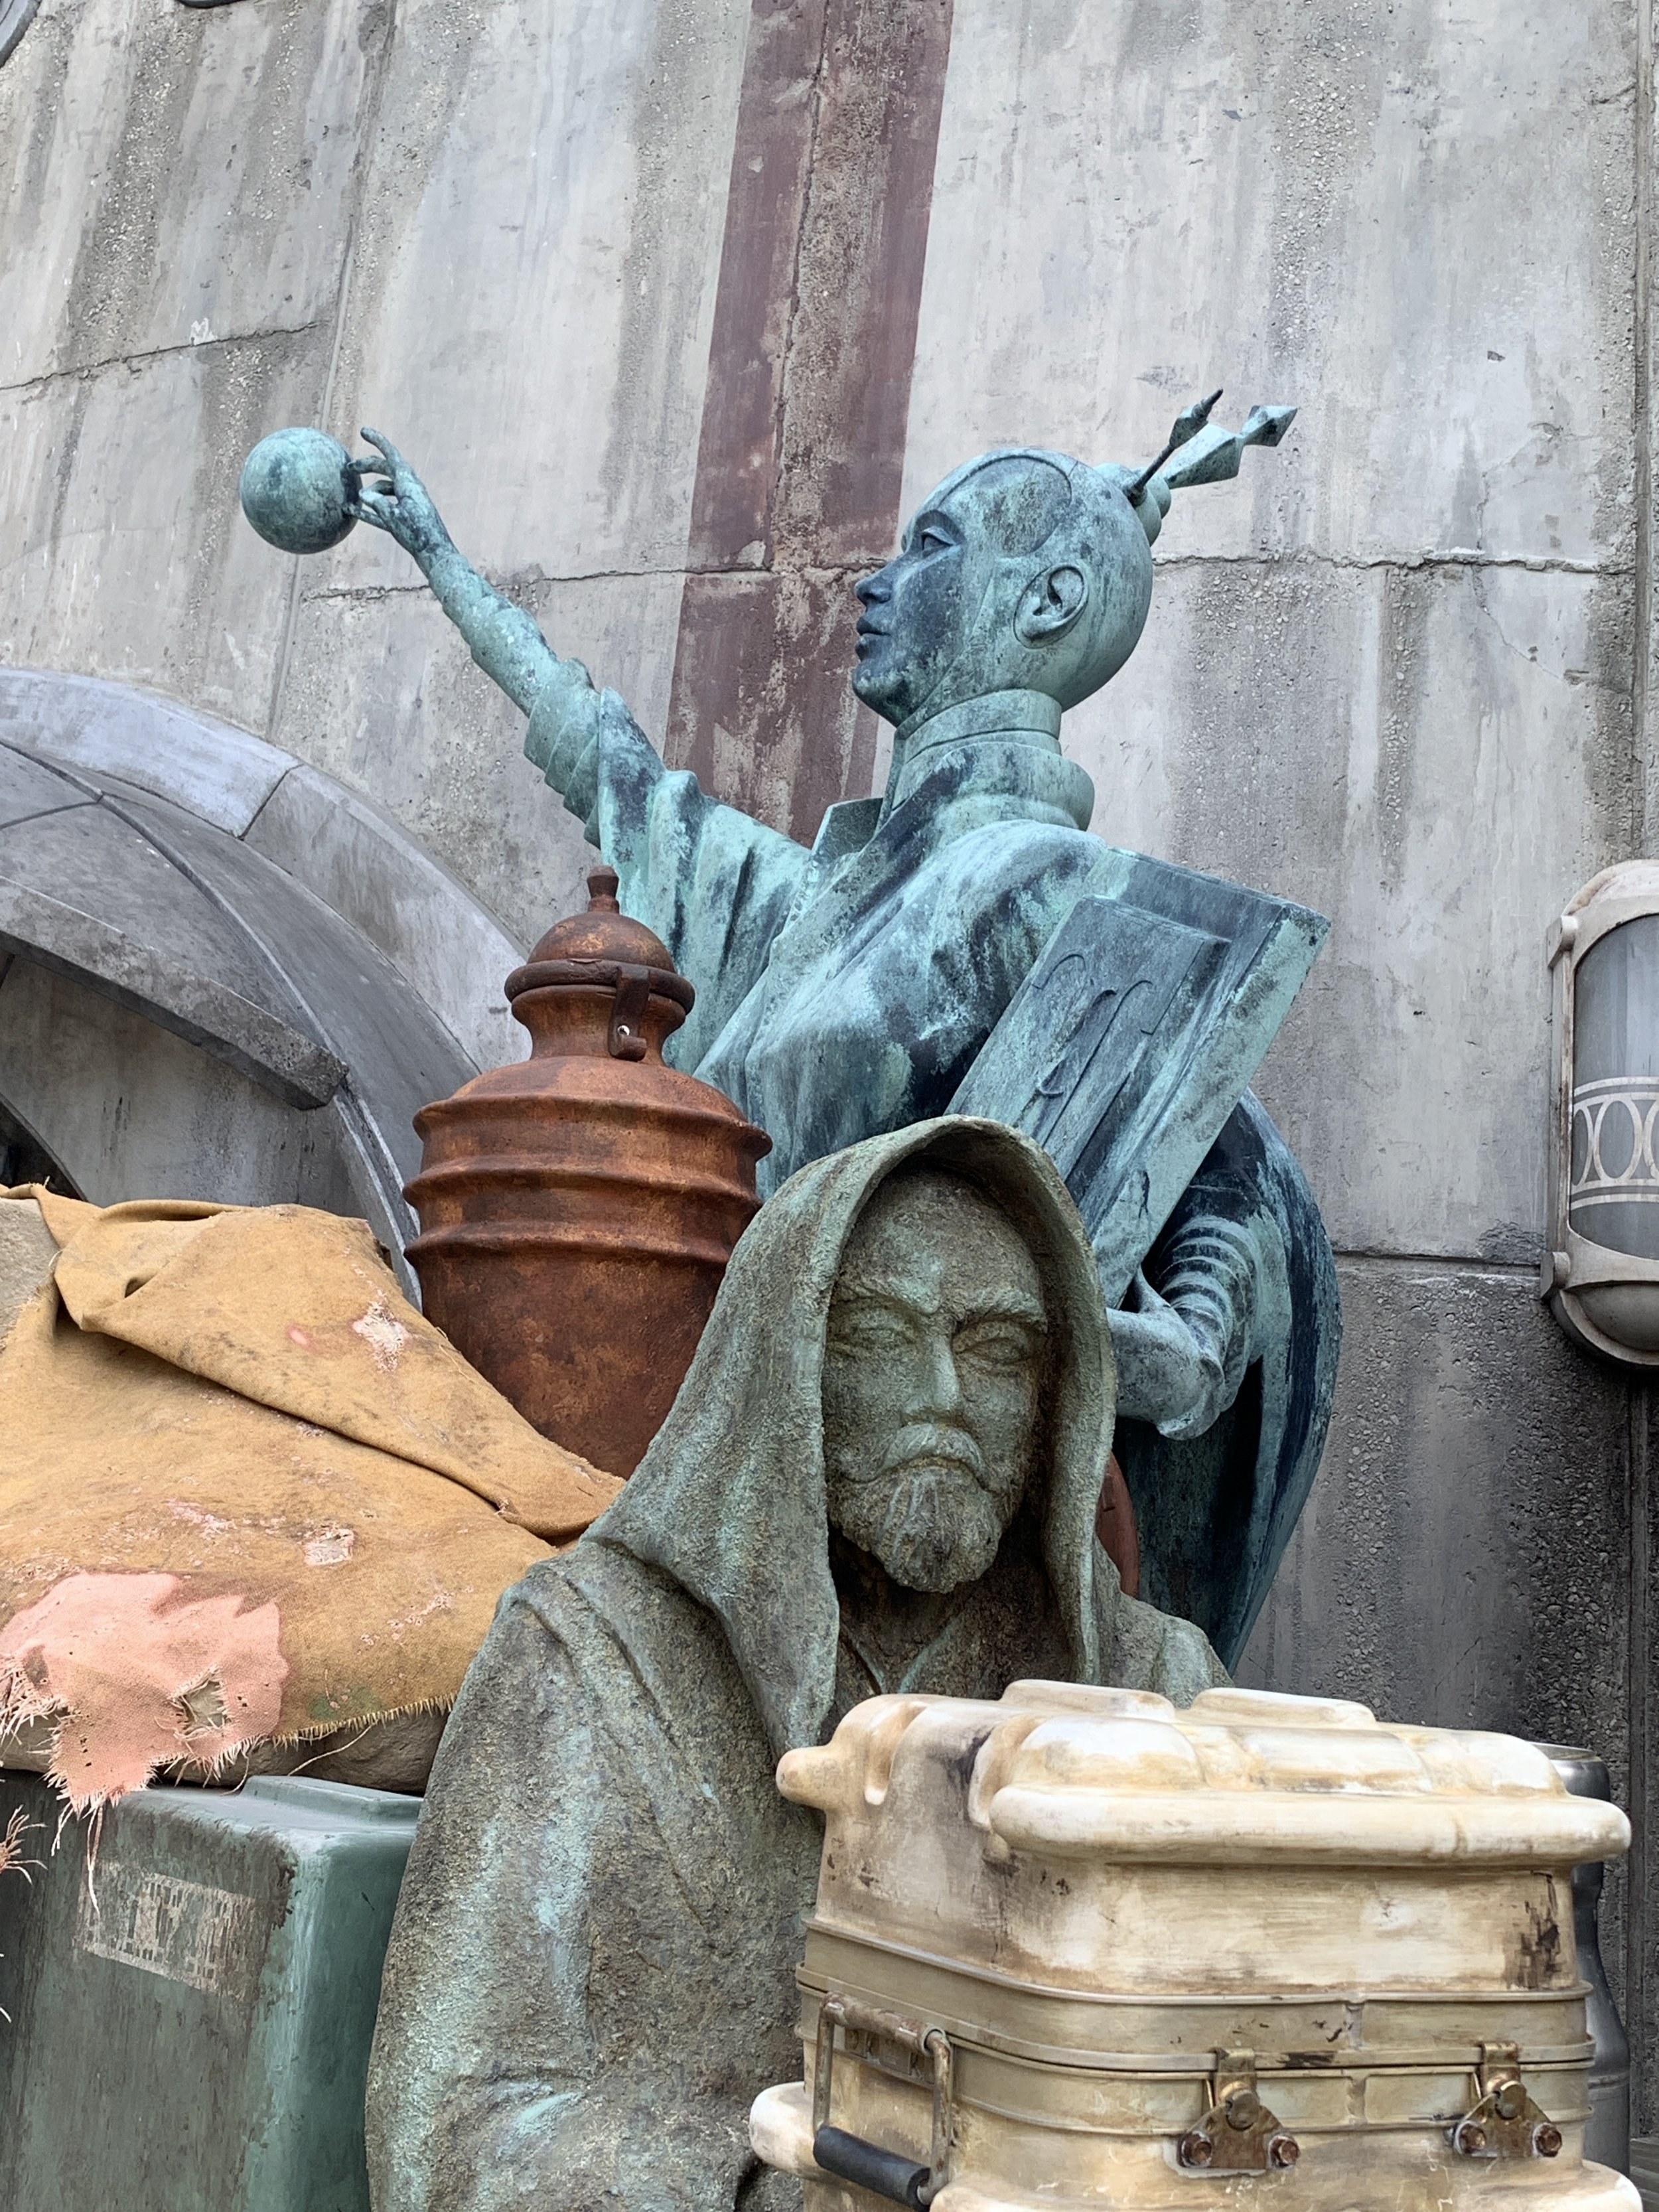 Amazing sculptures outside of a store.